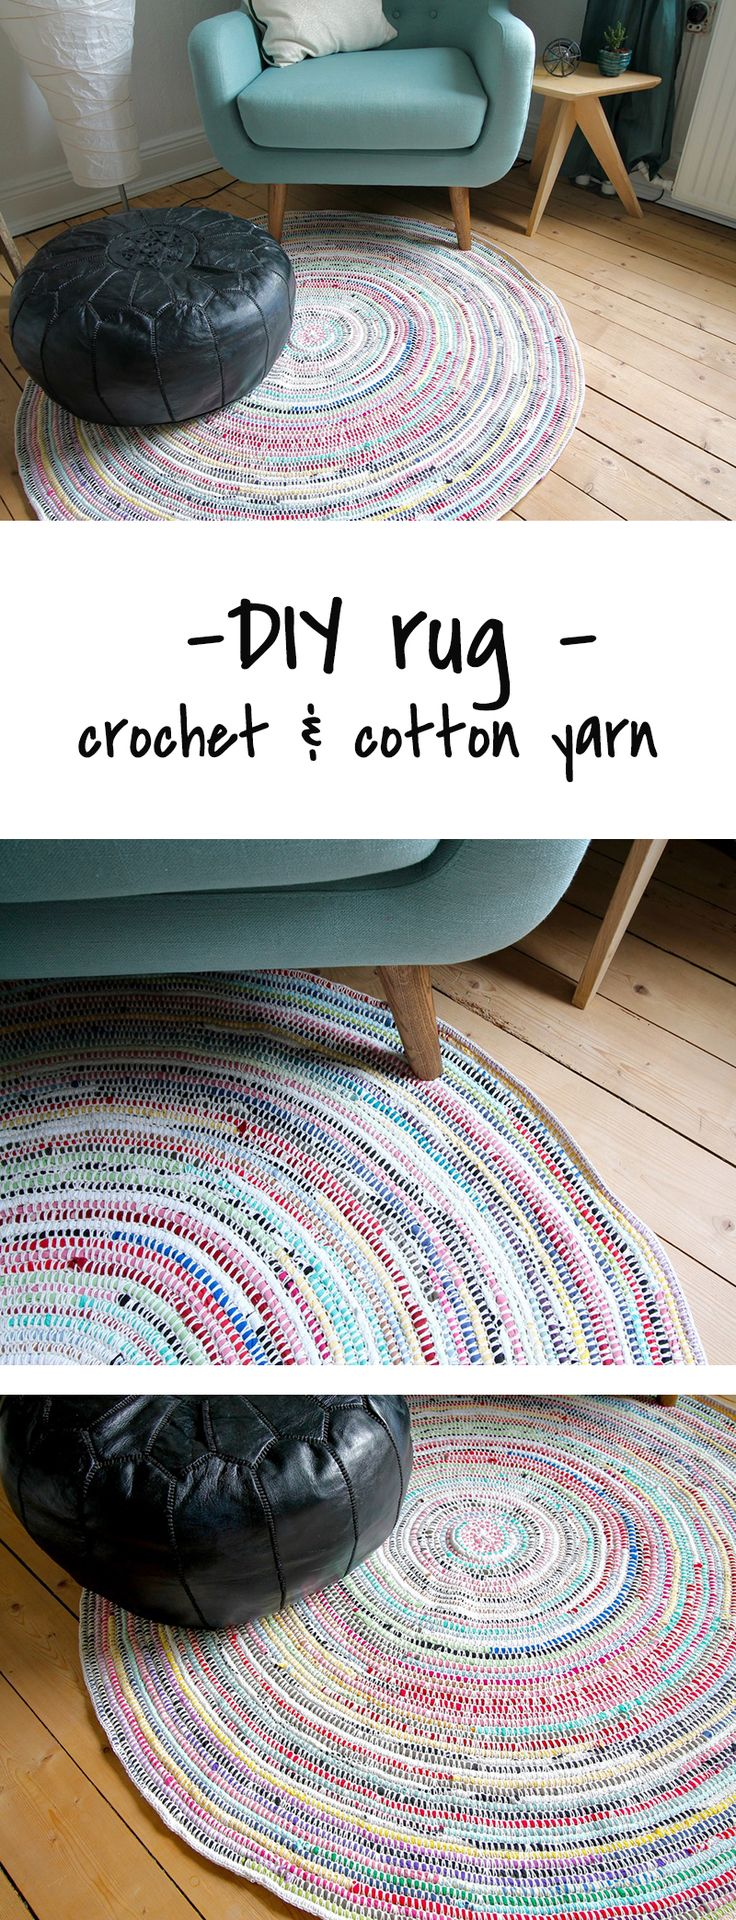 A DIY rug made with crochet and cotton yarn!